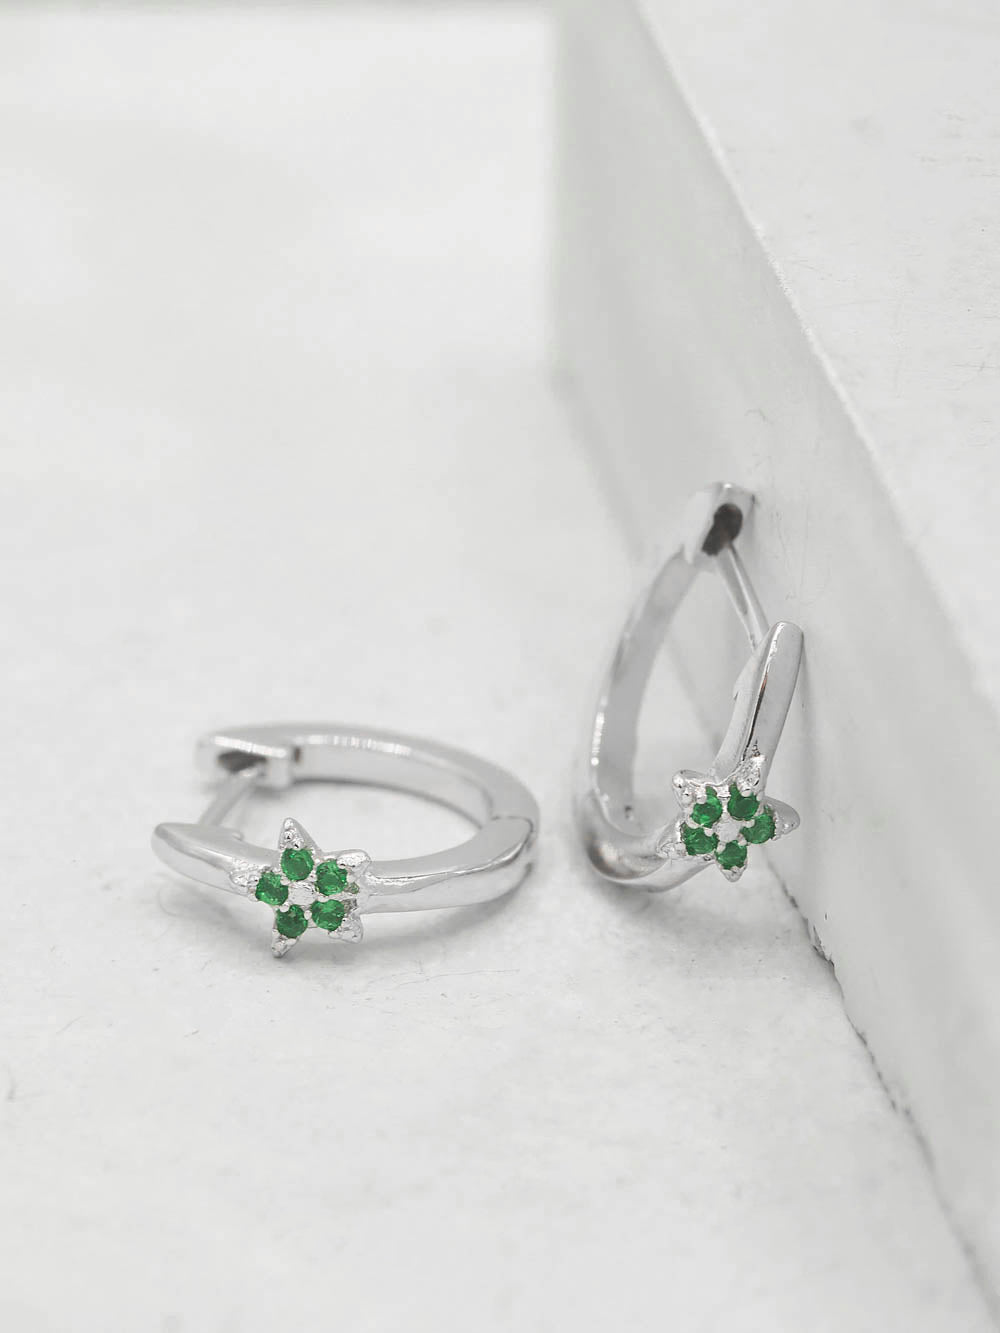 Rhodium  Plated Brass Mini Star with Green Emerald CZ Cubic Zirconia Hoop Huggies Dainty Earring by The Faint Hearted Jewelry